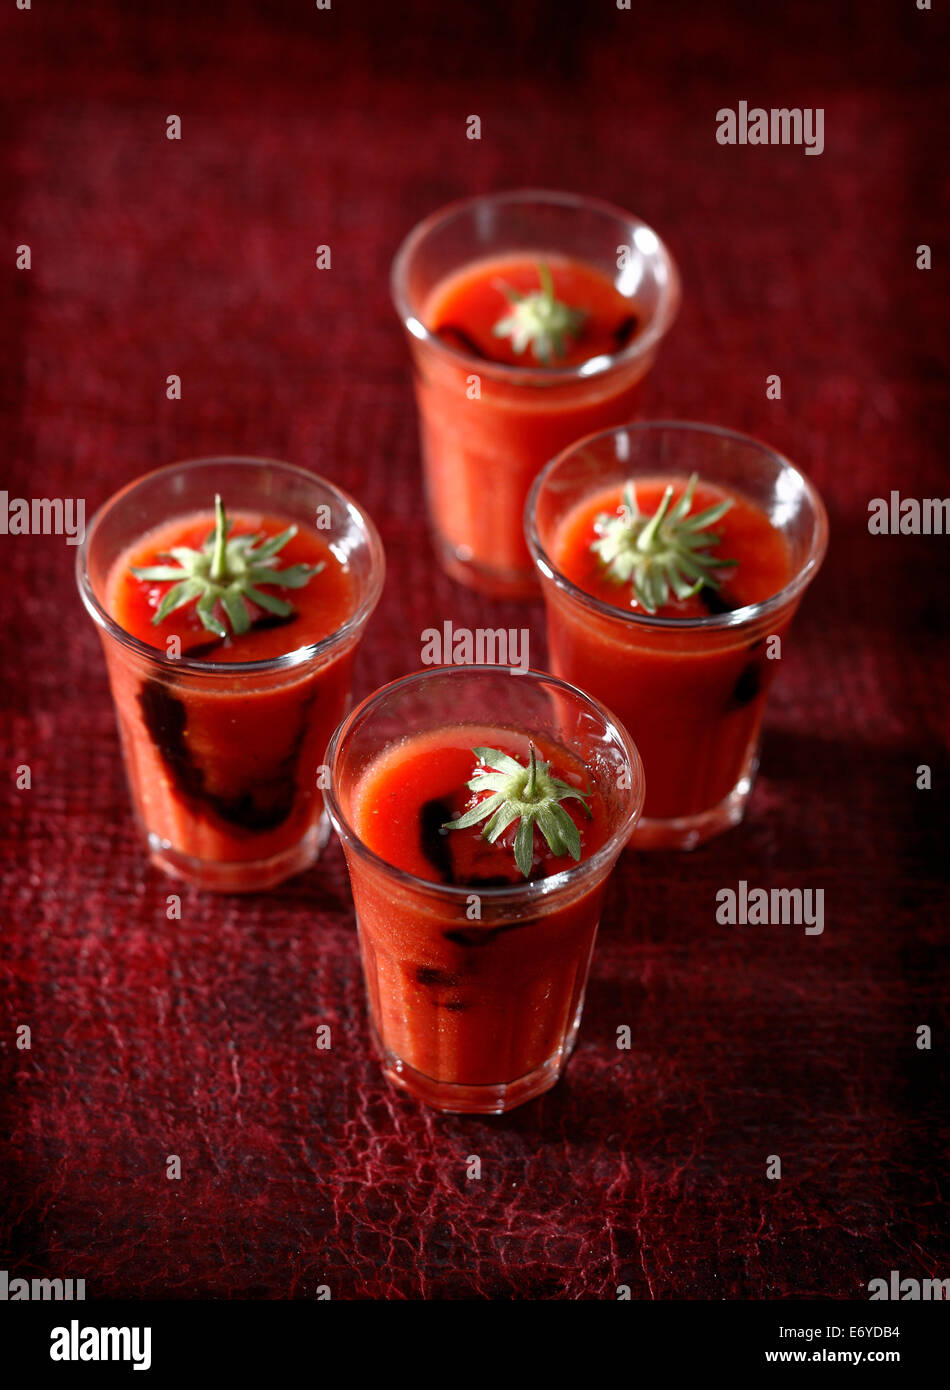 Tomato and strawberry juice with balsamic vinaigar - Stock Image